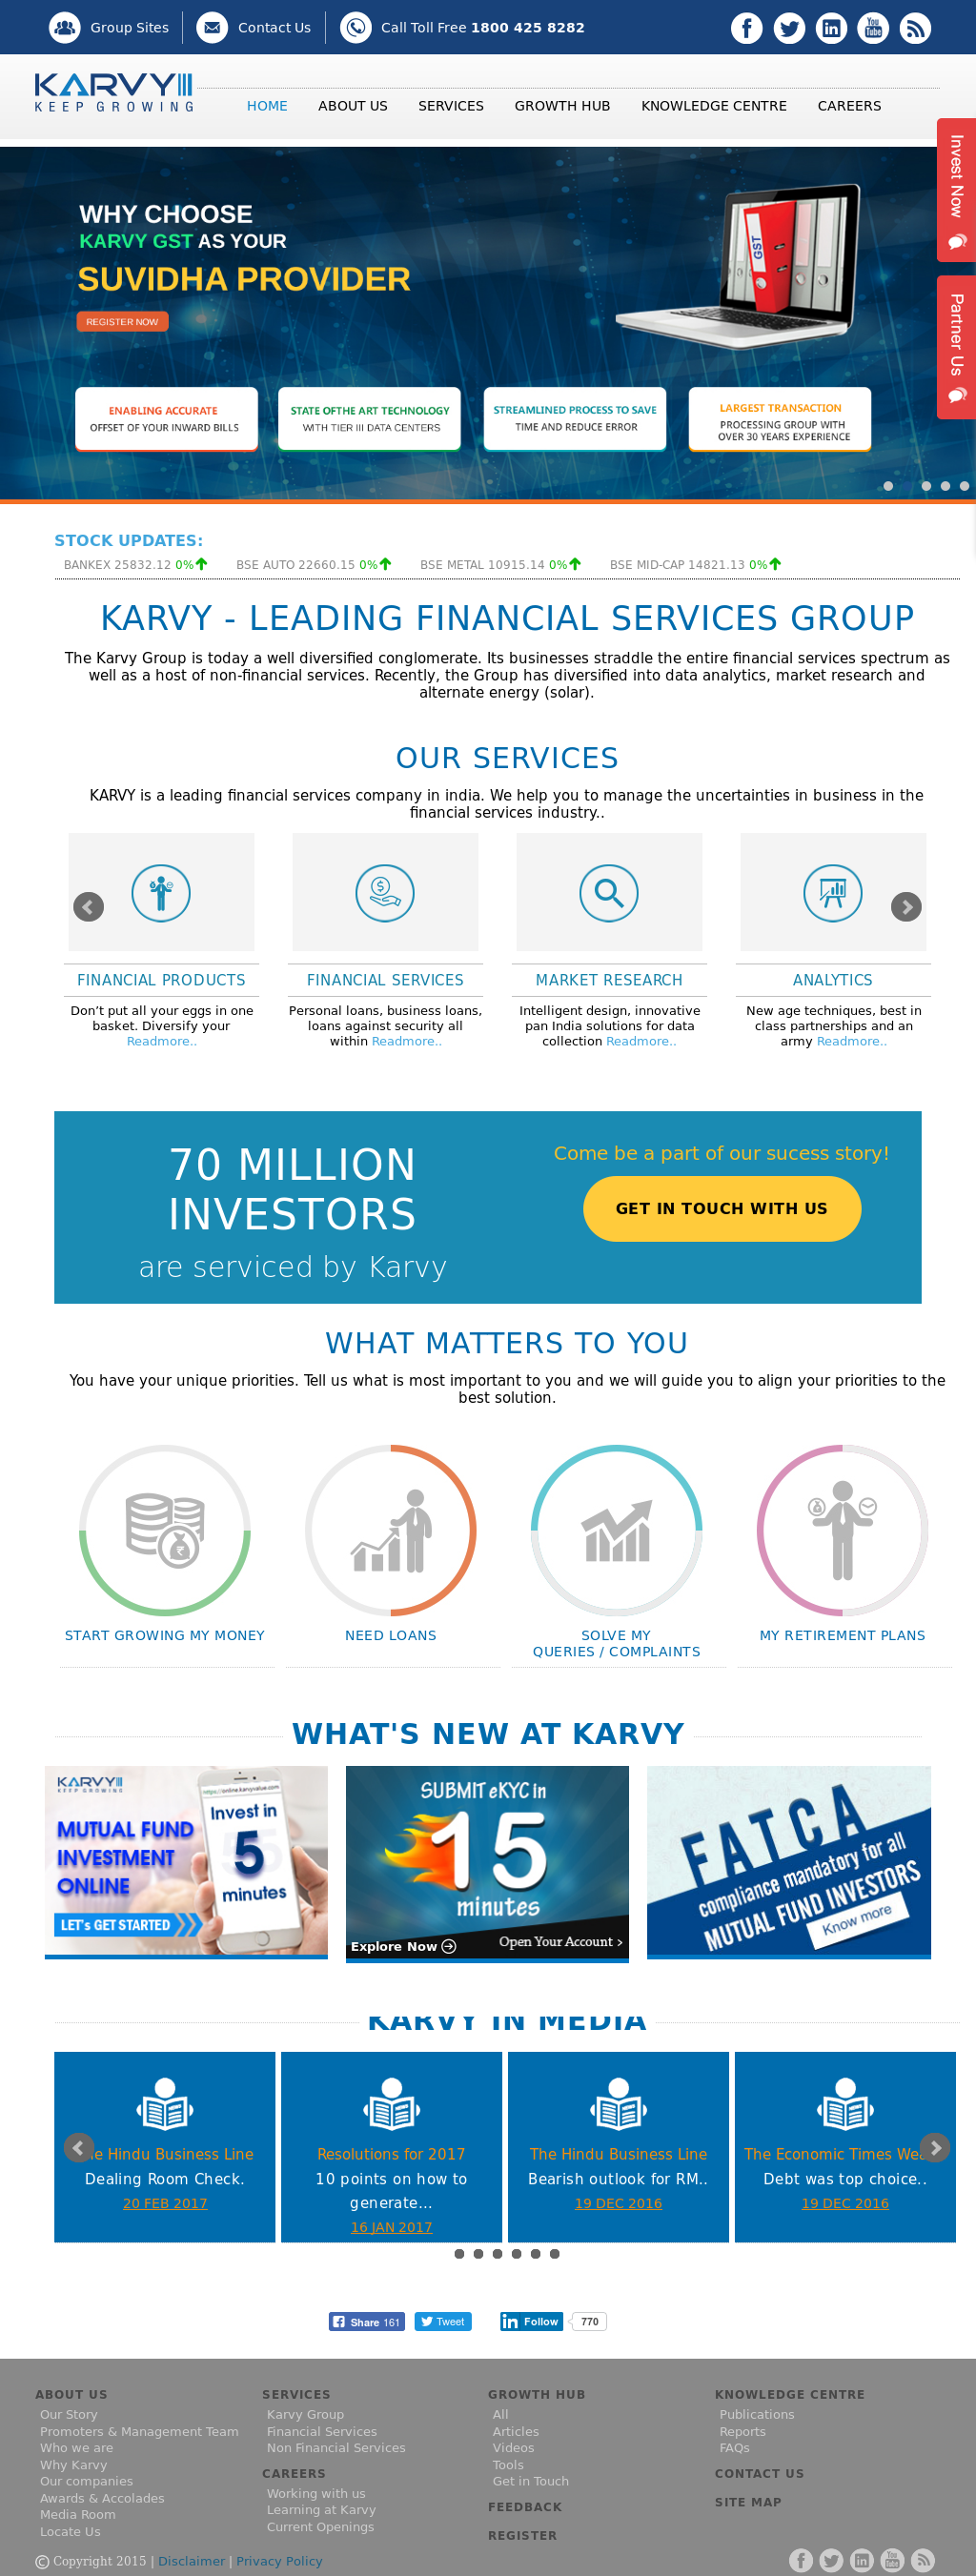 Karvy Competitors, Revenue and Employees - Owler Company Profile